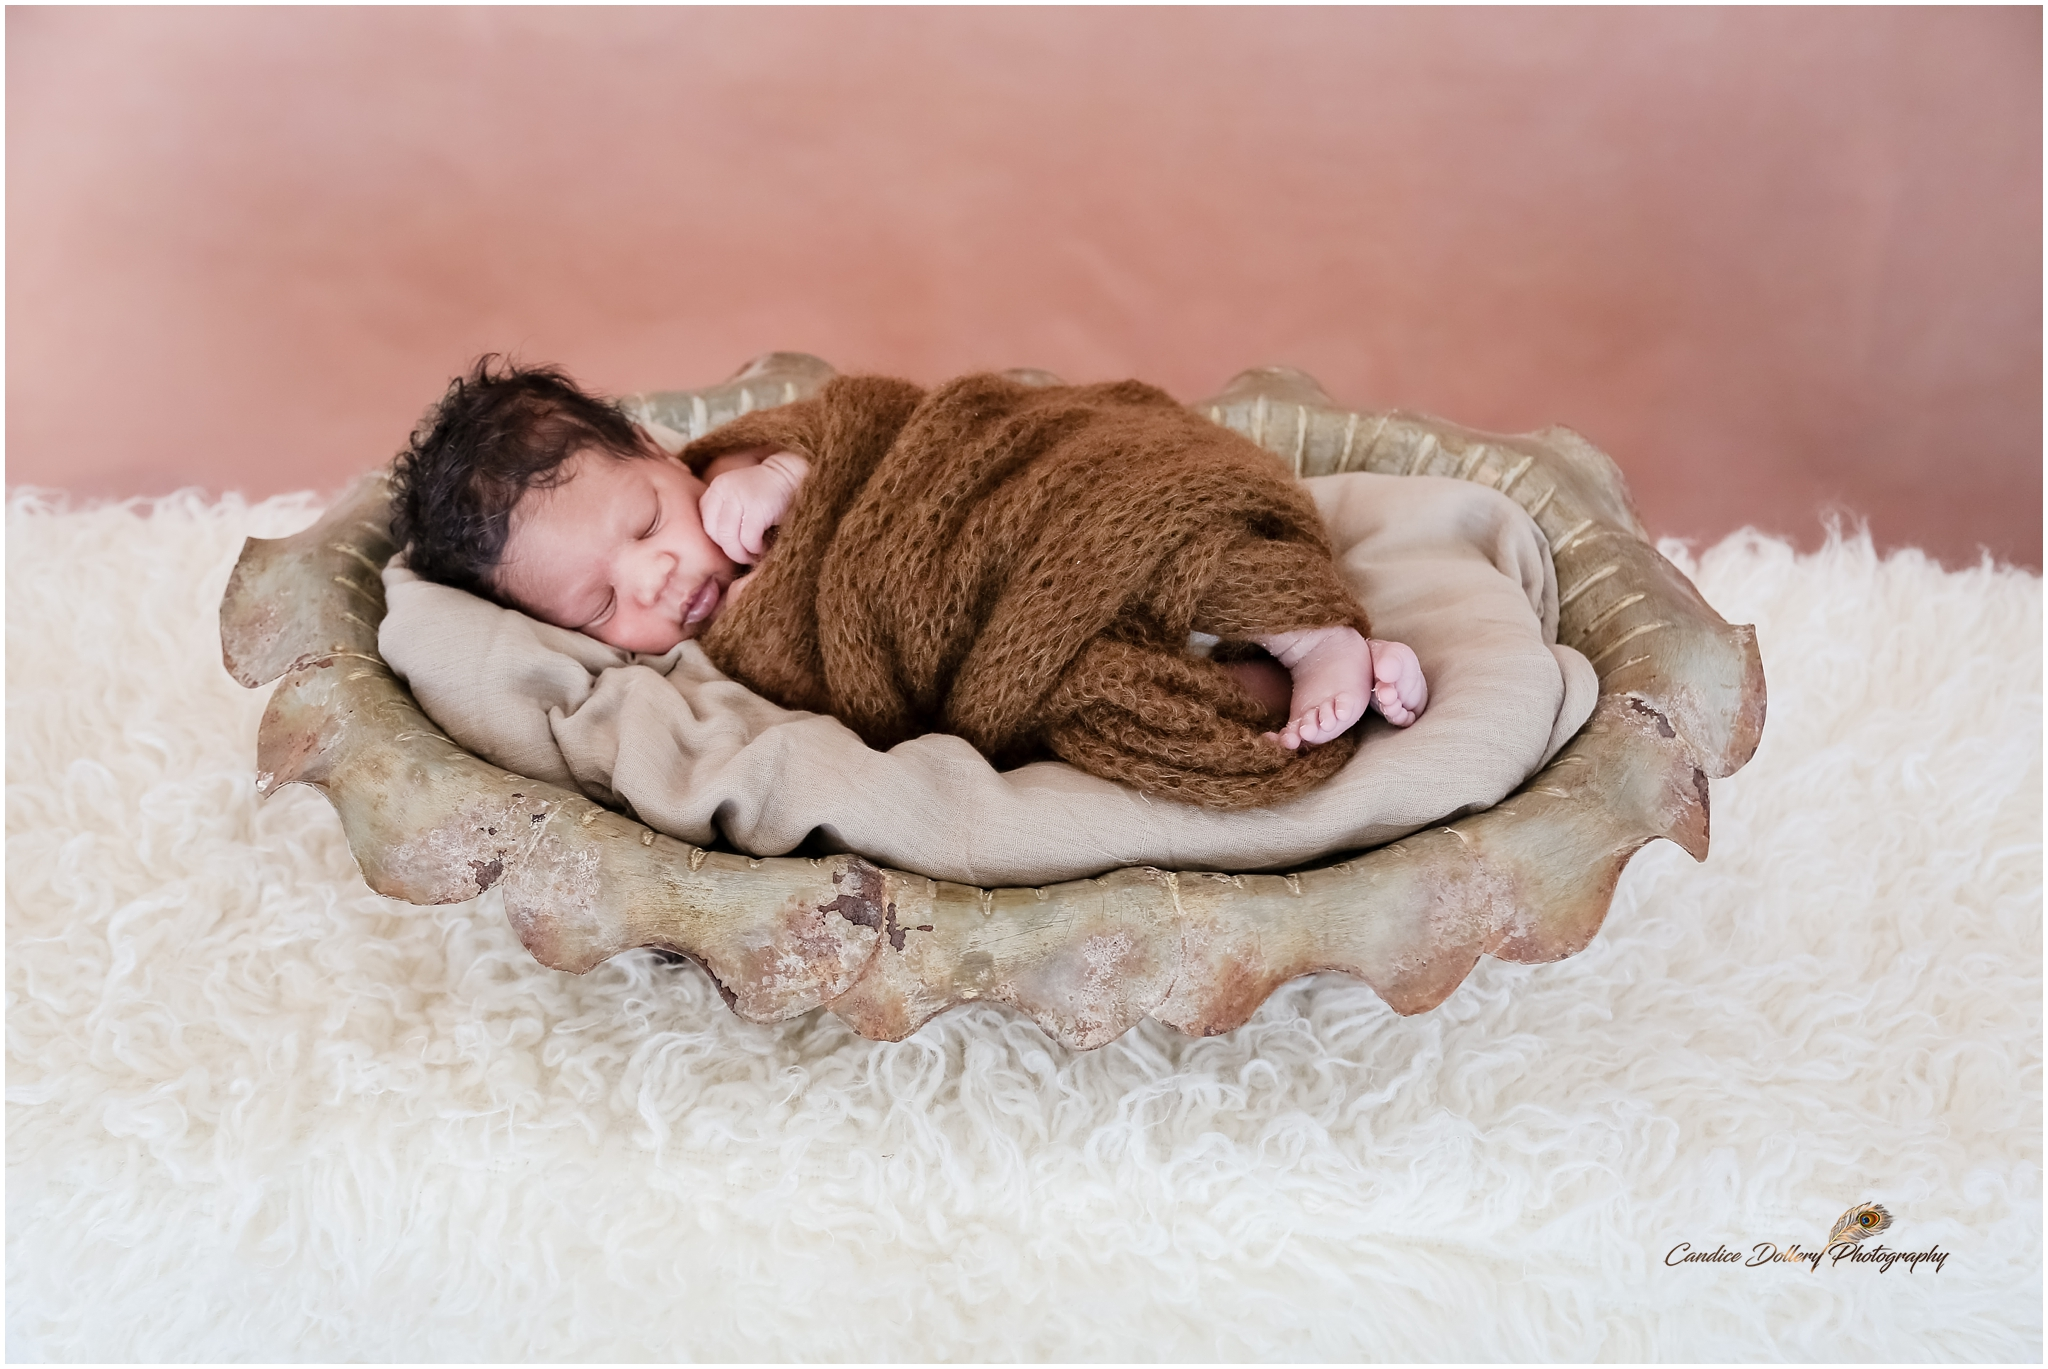 newborn-phemelo-candice-dollery-photography_1862